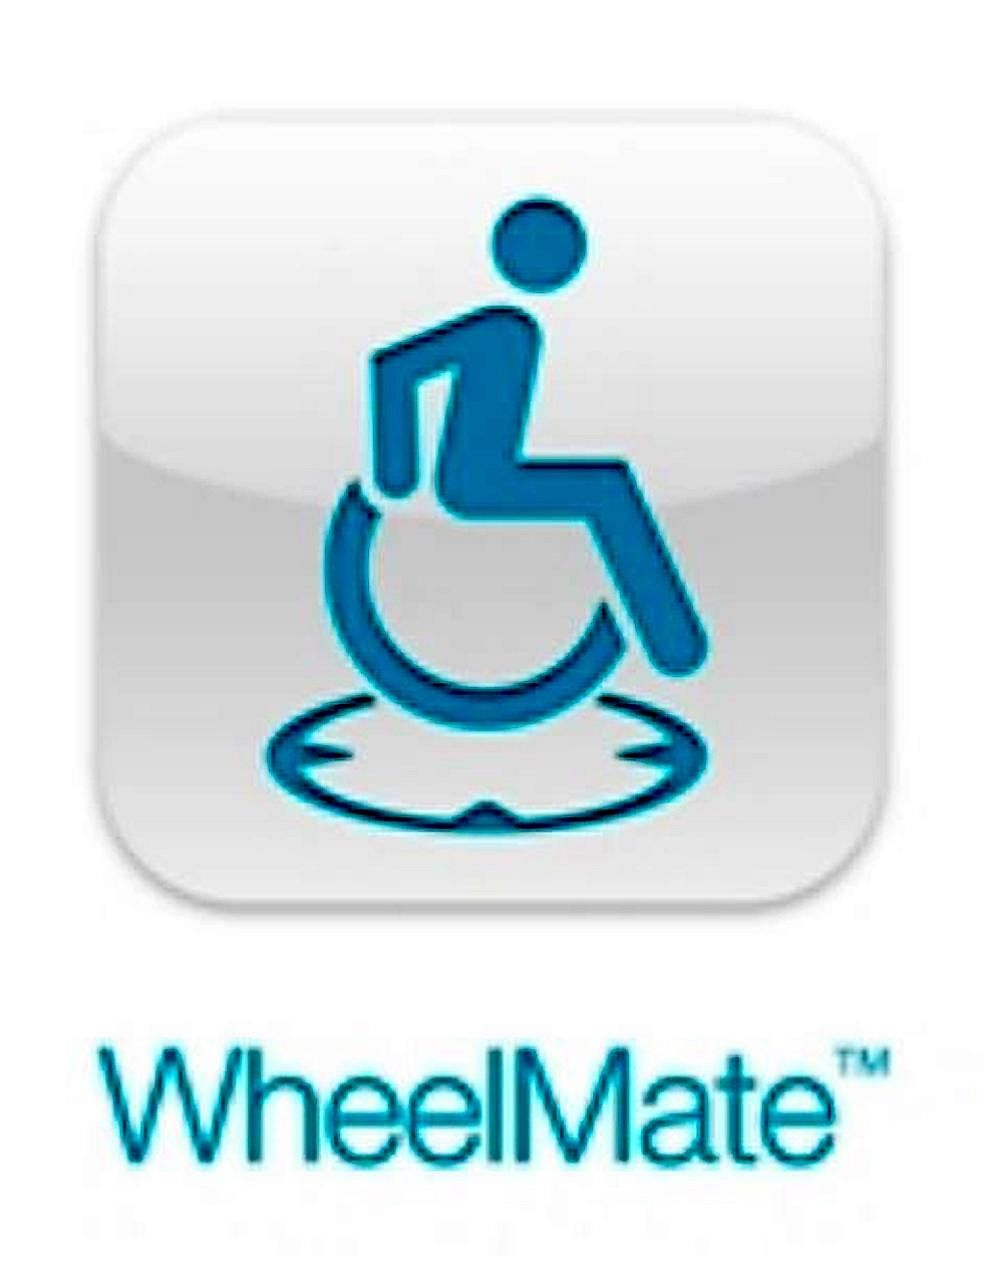 Ms Louise Bruton, a journalist with The Irish Times, reviews four access apps for wheelchair users in Dublin - and finds them coming up short.